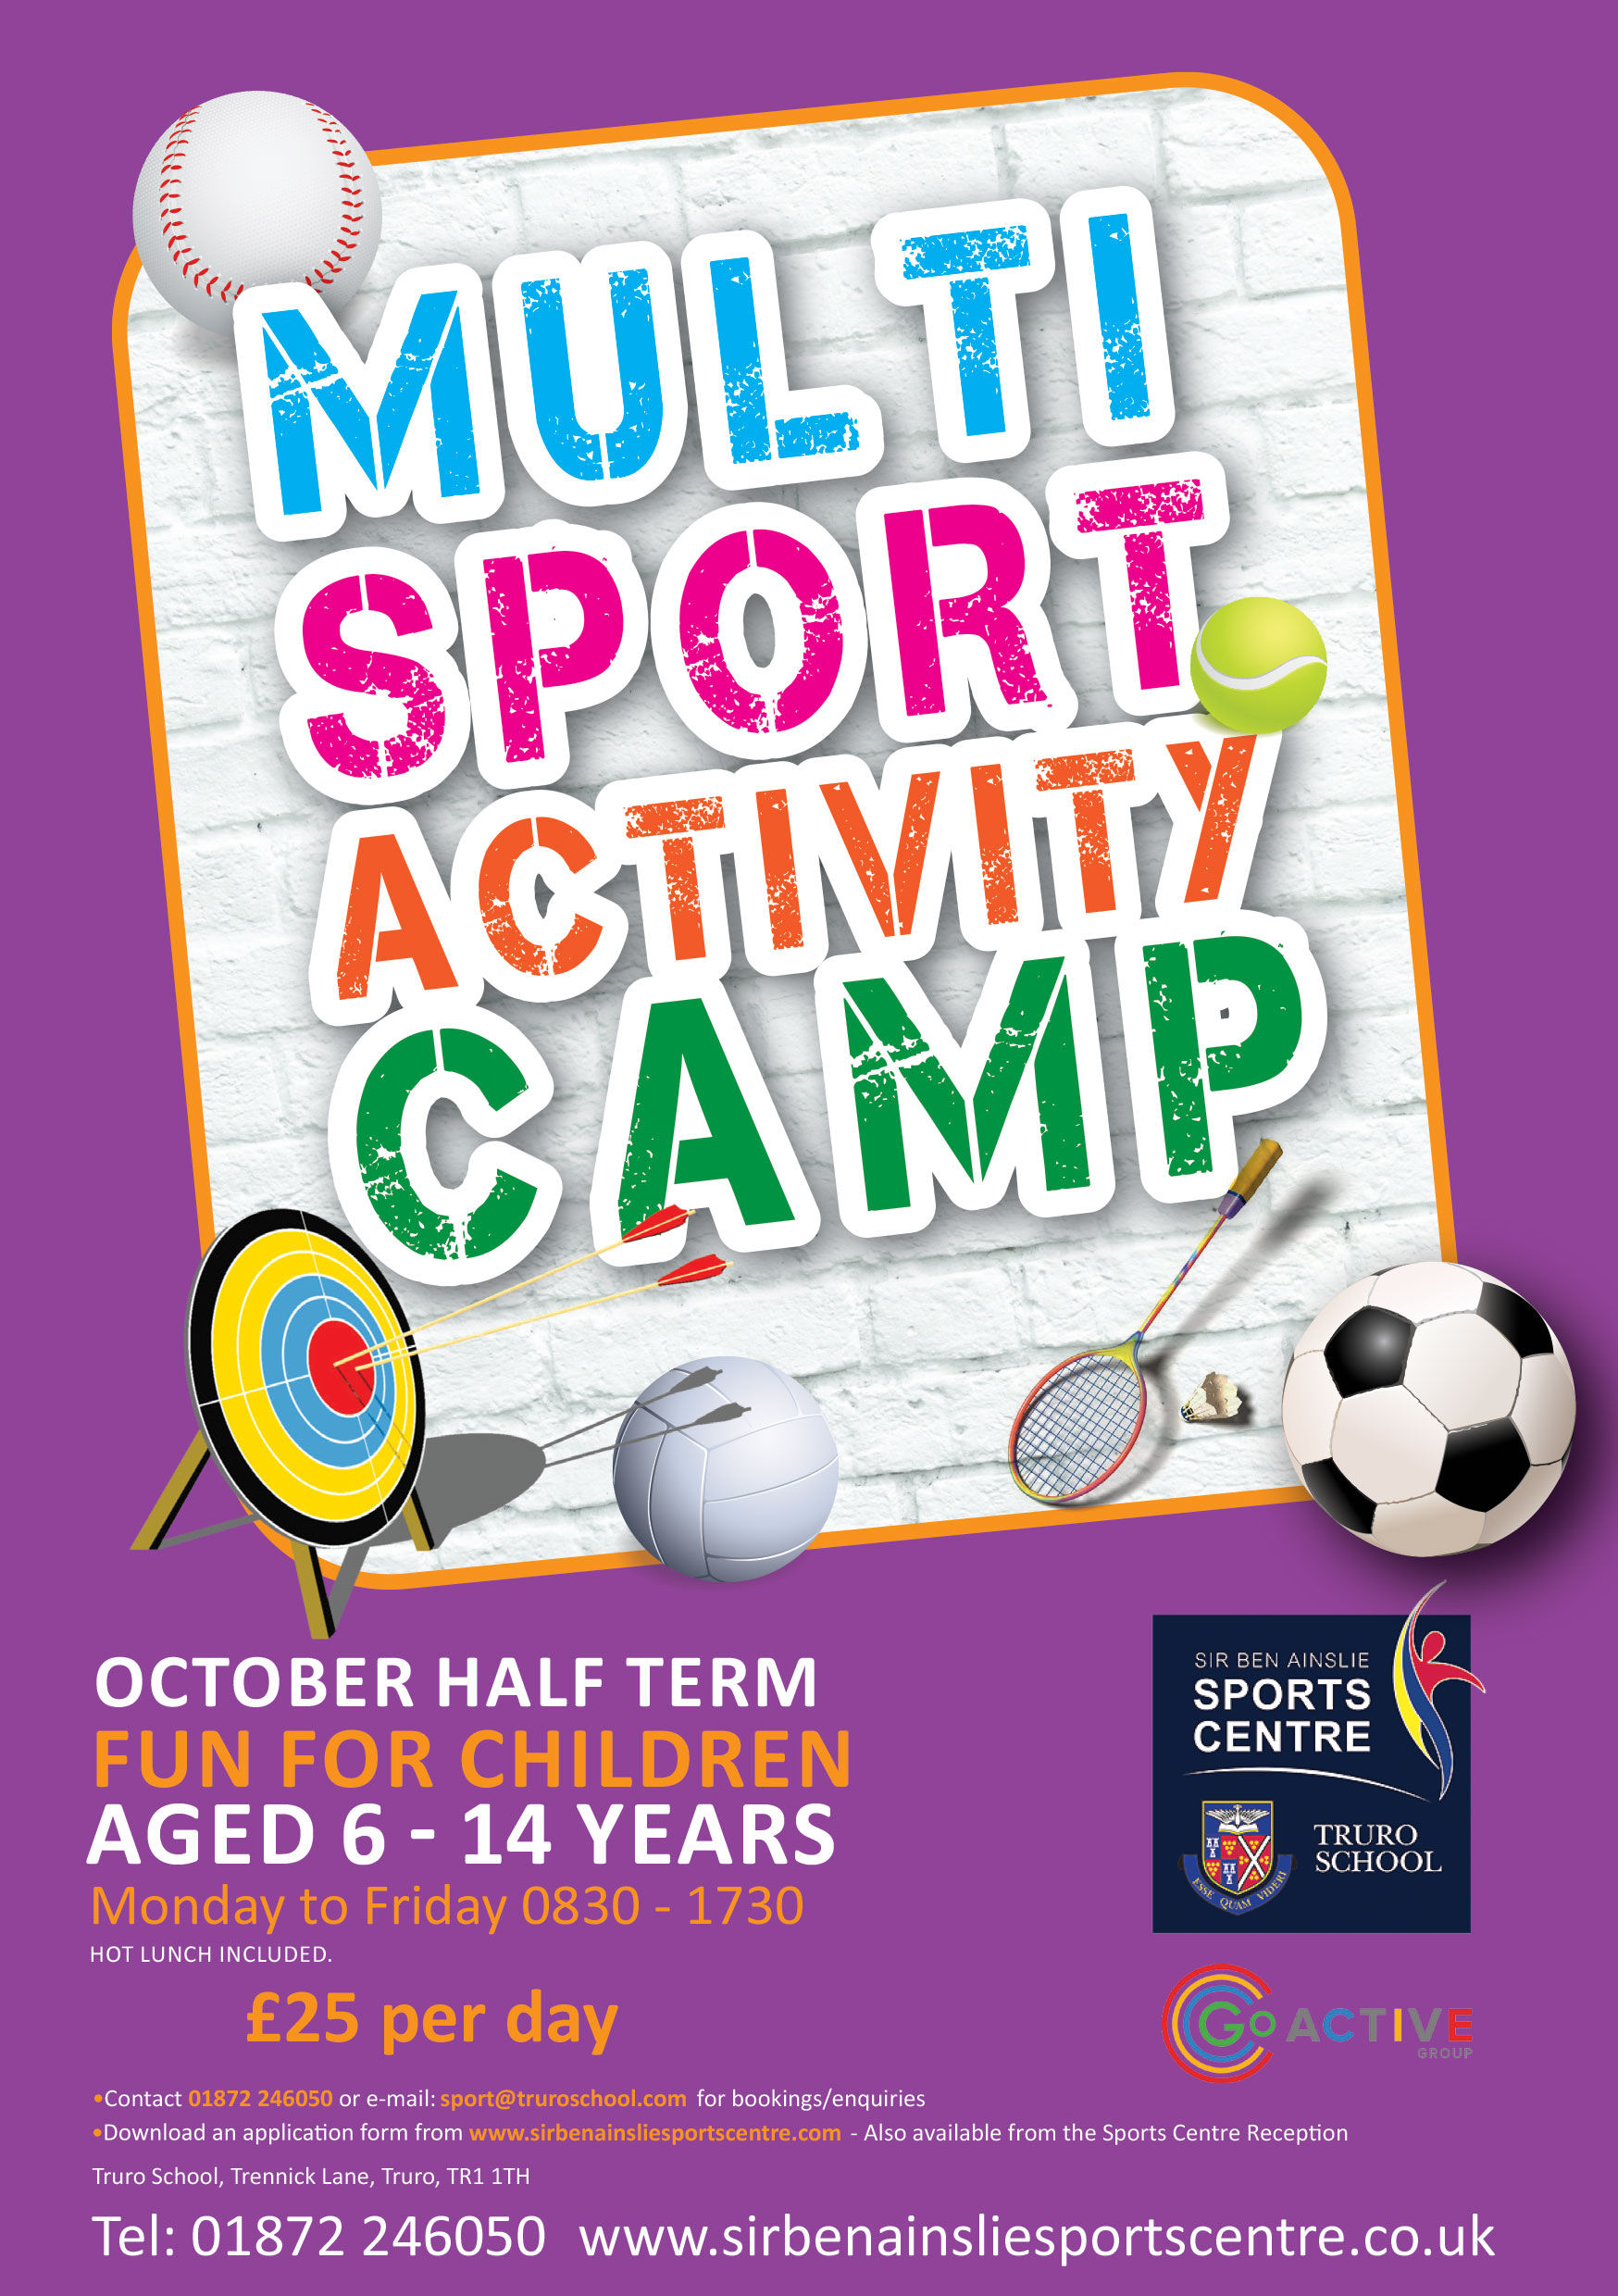 October Multi Sport Activity Camp Sir Ben Ainslie Sports